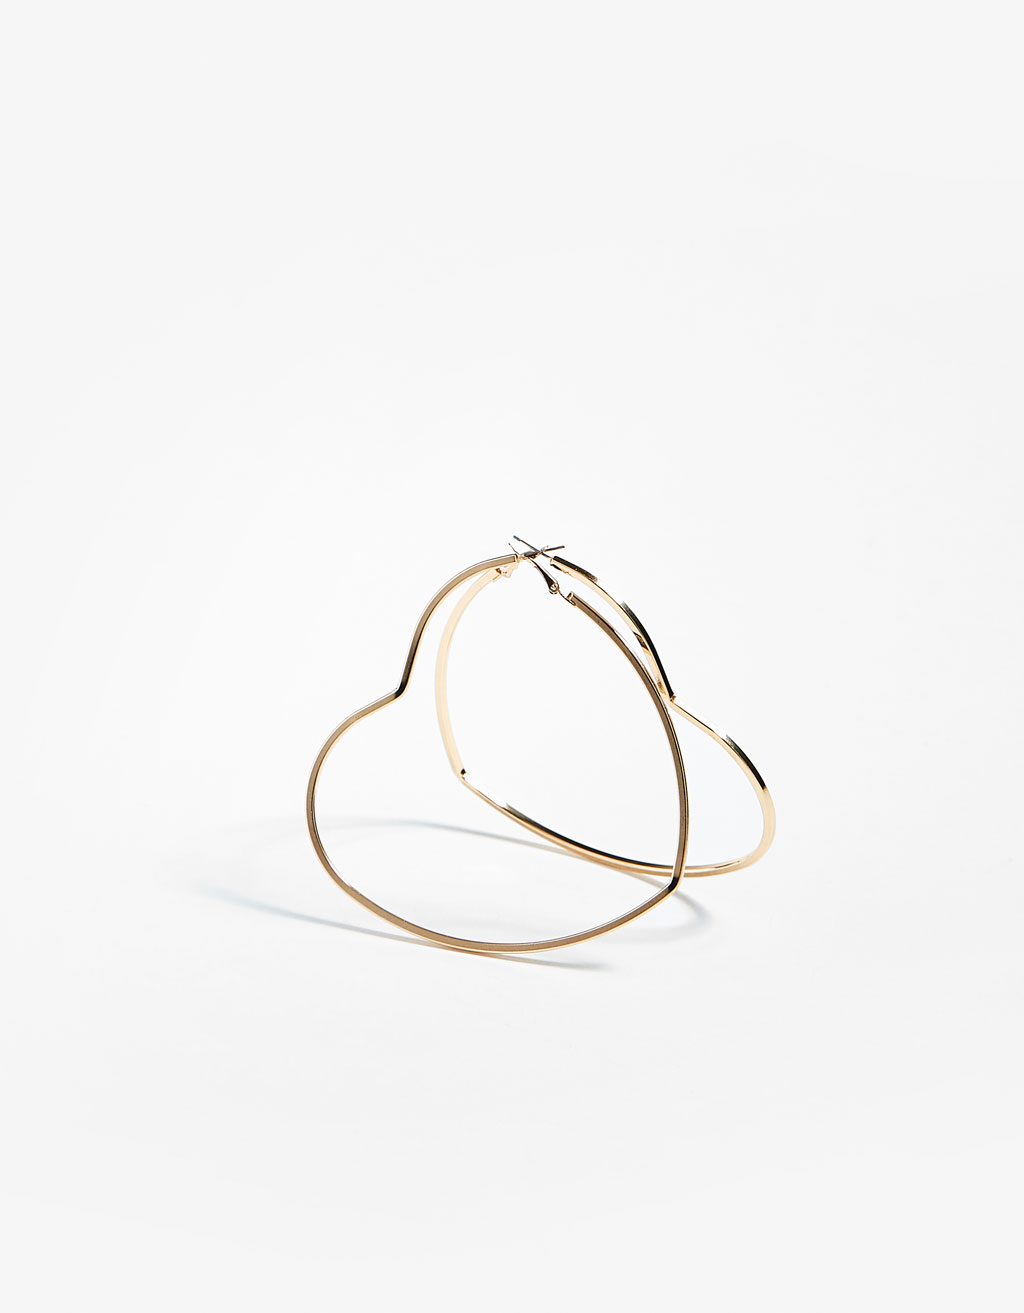 Heart-shaped hoop earrings